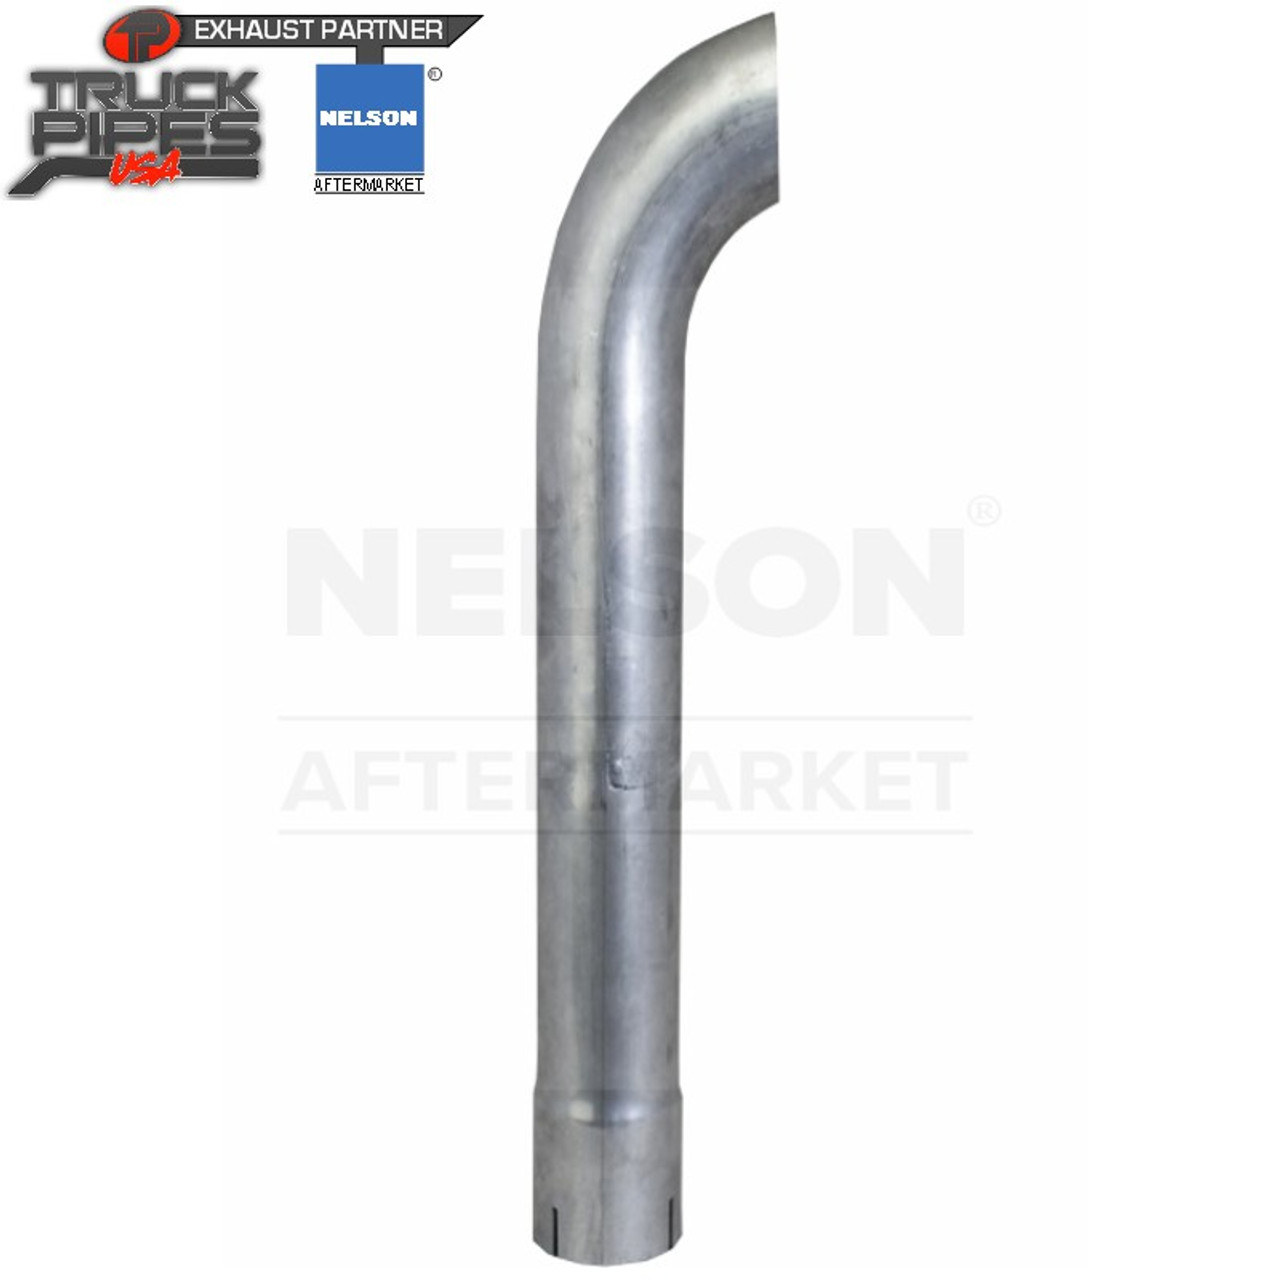 """4.5"""" x 18"""" Curved Exhaust Stack Aluminized Tail Pipe ID Bottom Nelson 90563A"""